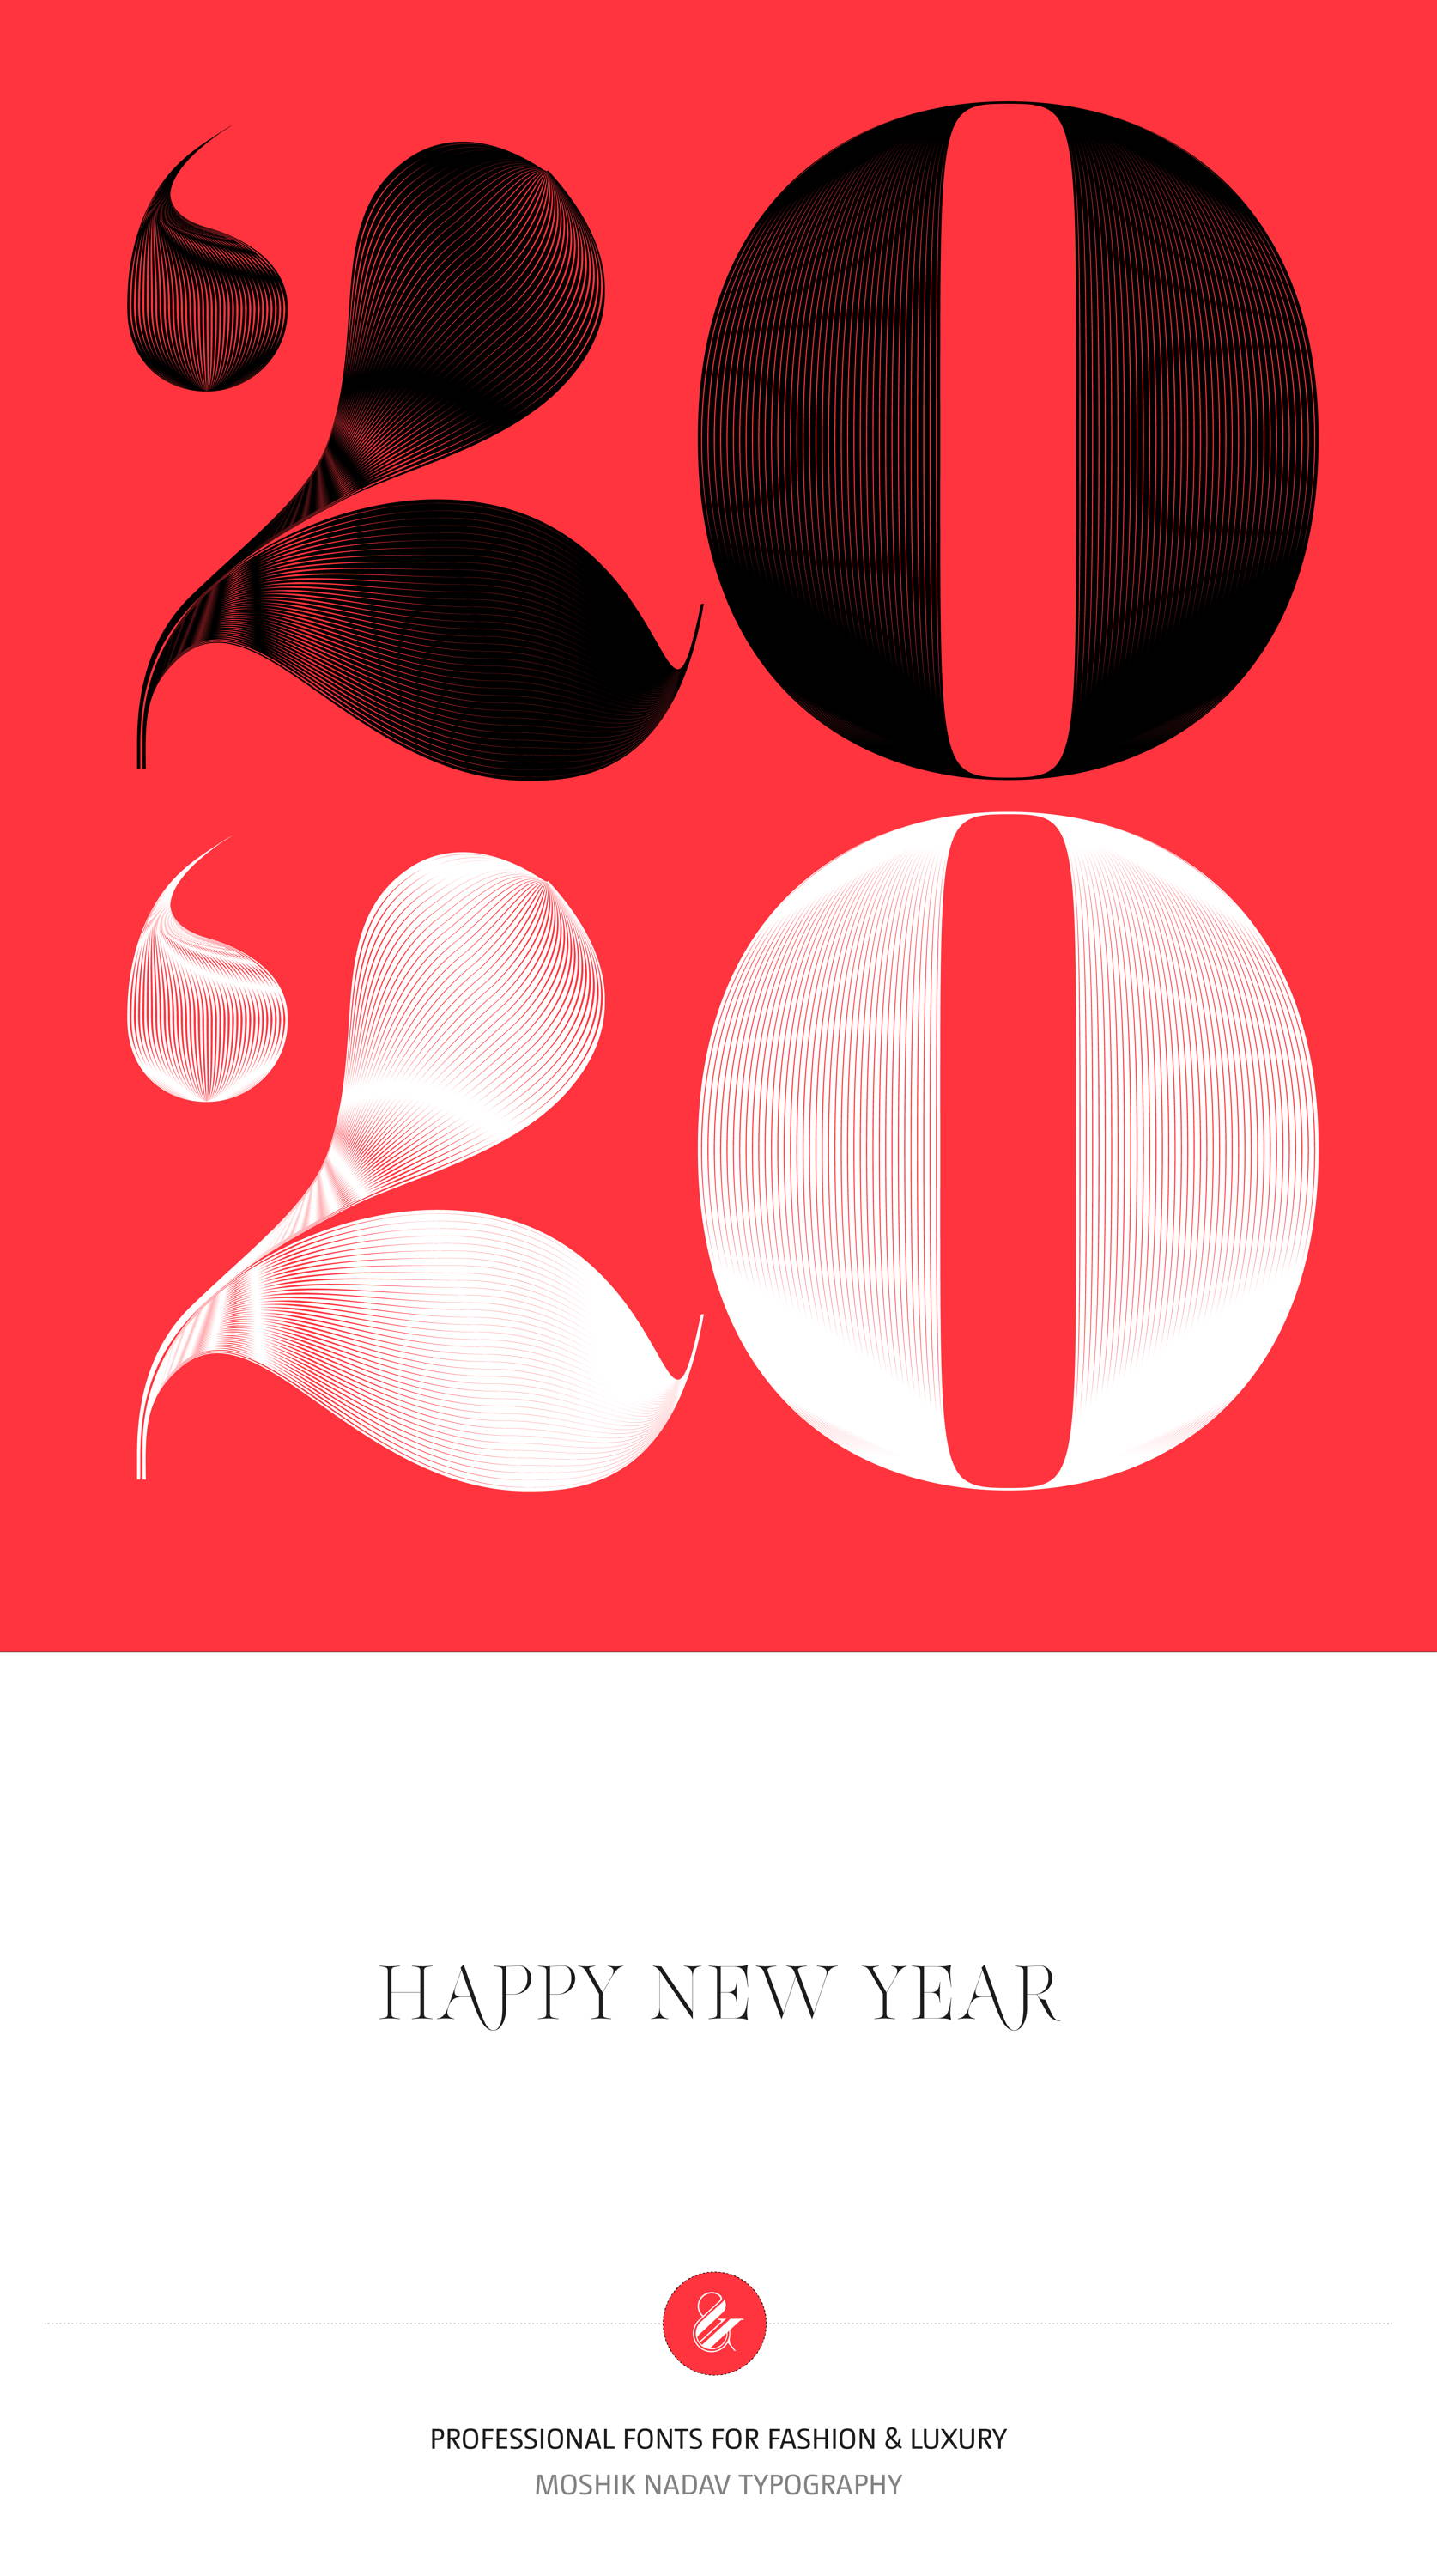 2020, Happy New Year, Typography, Fashion Typography, Fashion fonts, Bold font, Sexy fonts, Moshik Nadav, Typography poster